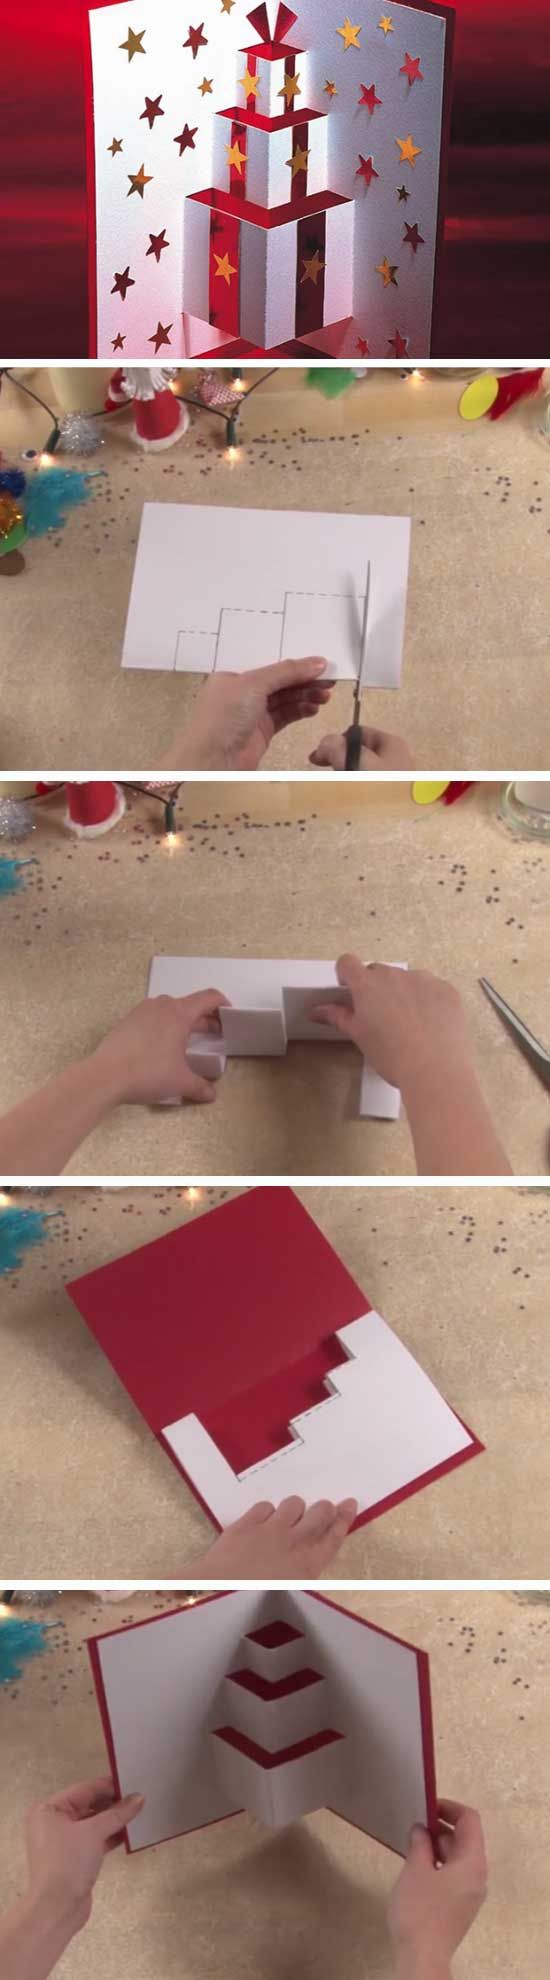 20 diy christmas cards that family friends will love diy 20 diy christmas cards that family friends will love solutioingenieria Image collections